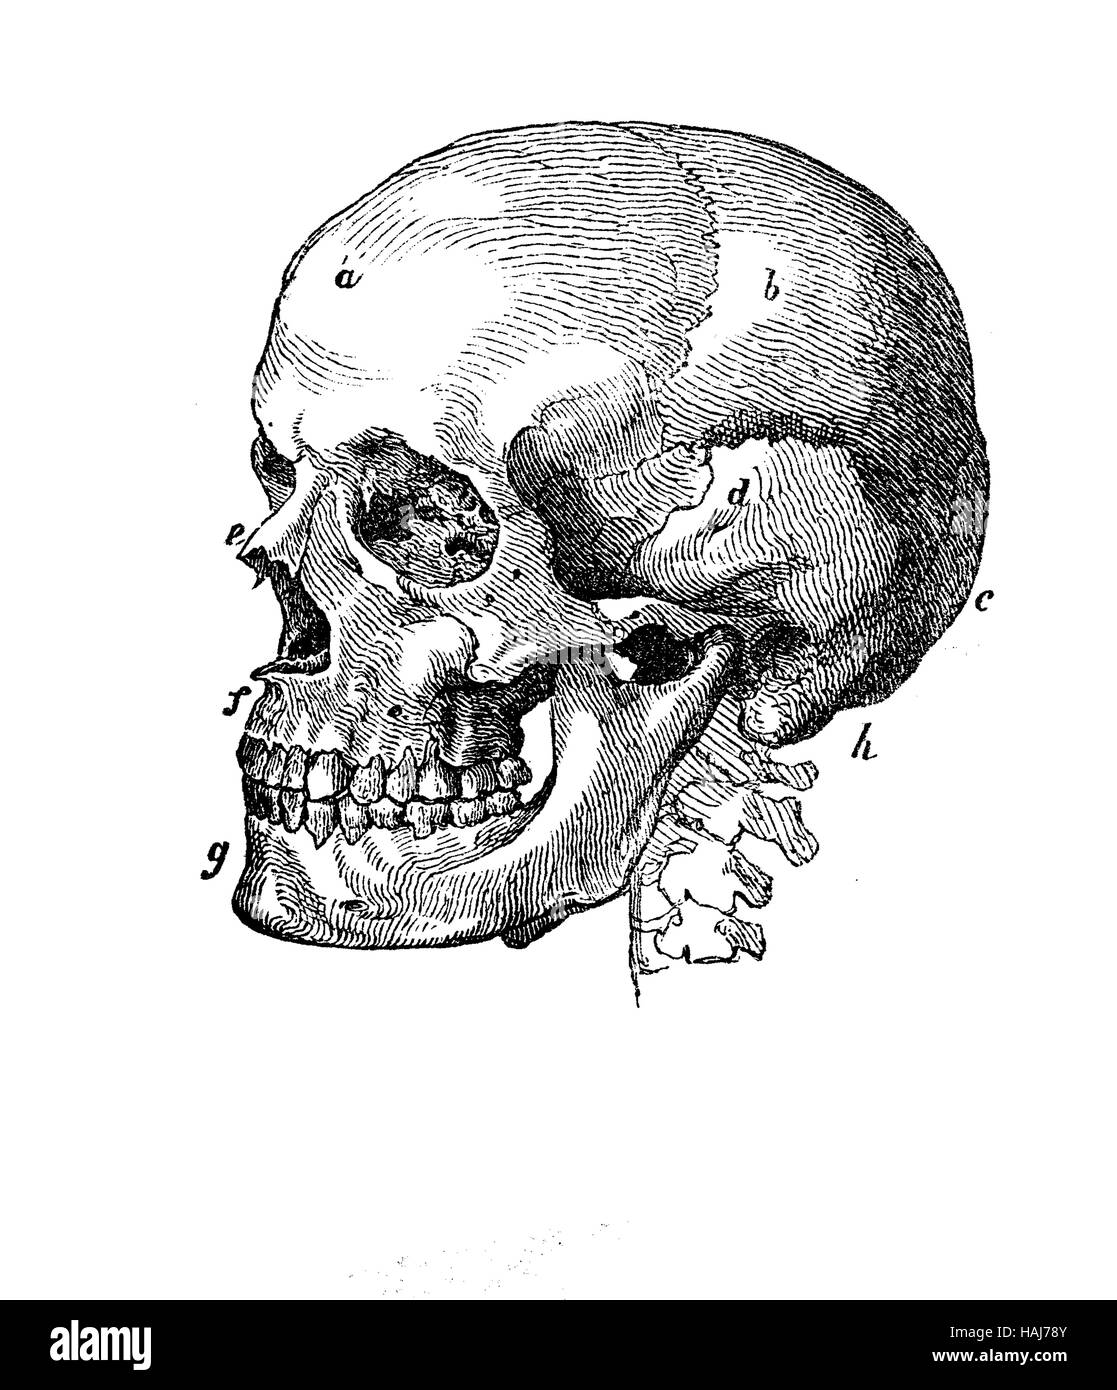 Skull Cut Out Stock Images & Pictures - Alamy